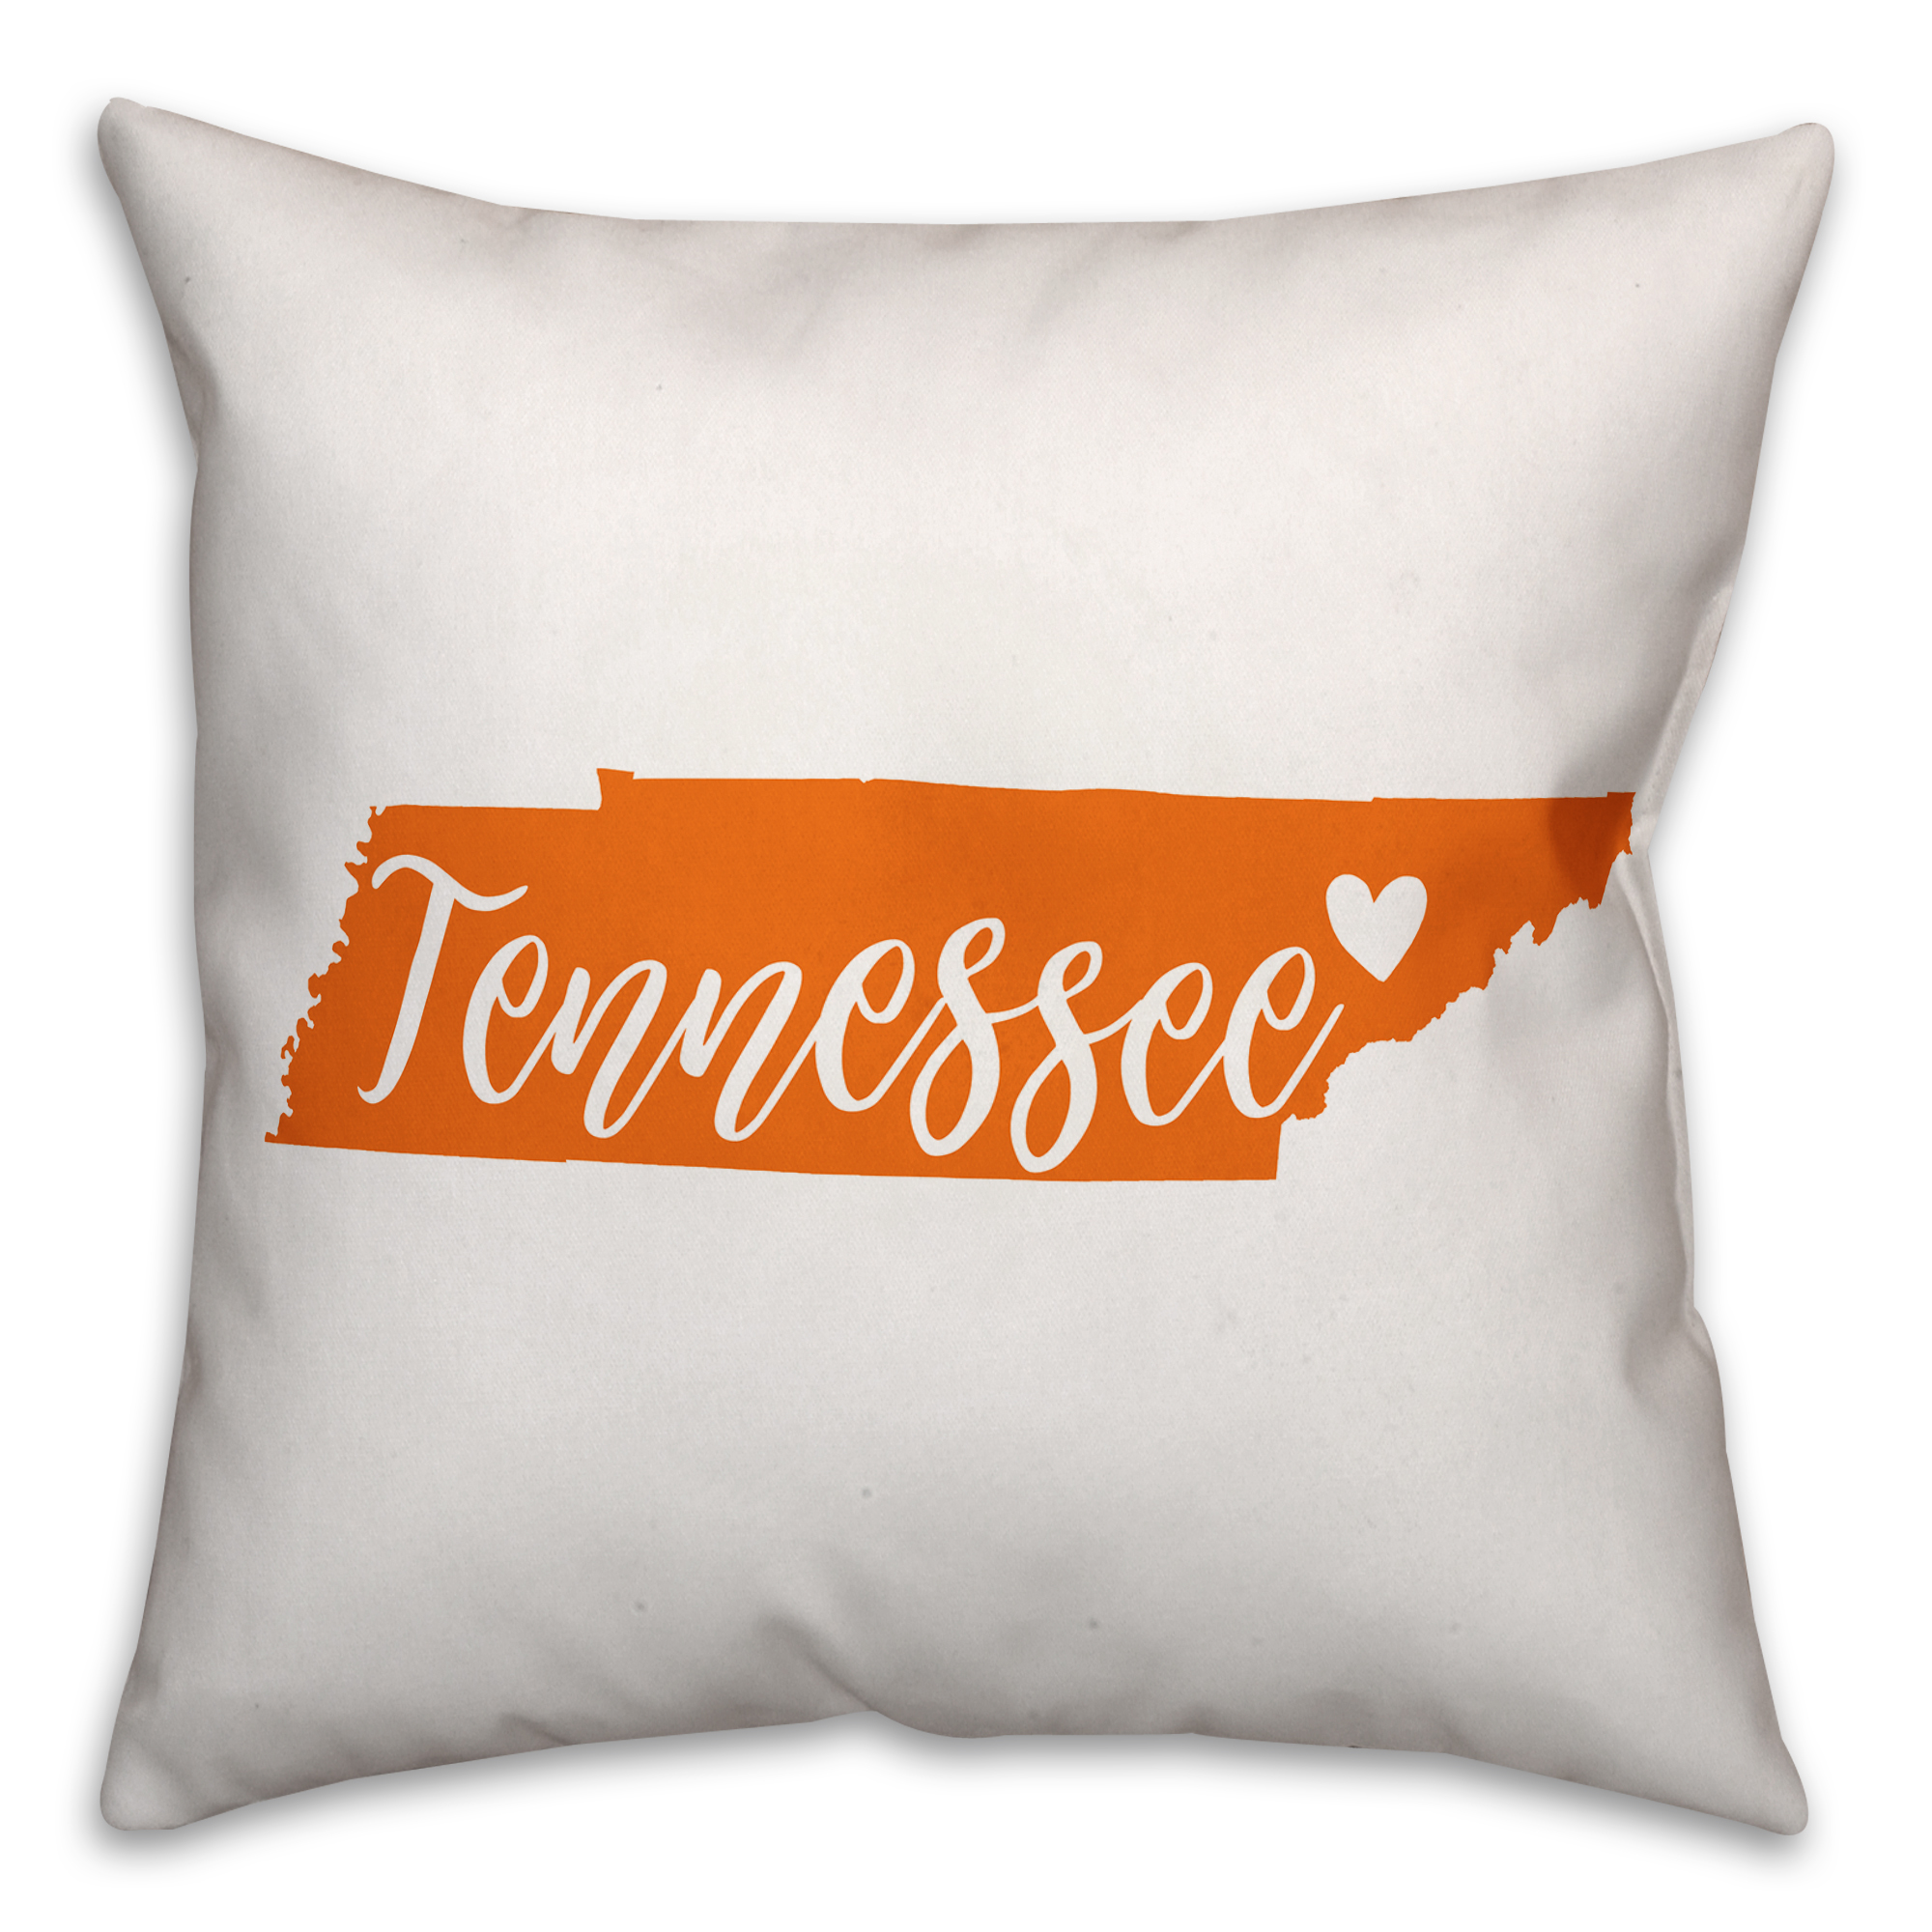 Orange and White Tennessee Pride 16x16 Spun Poly Pillow